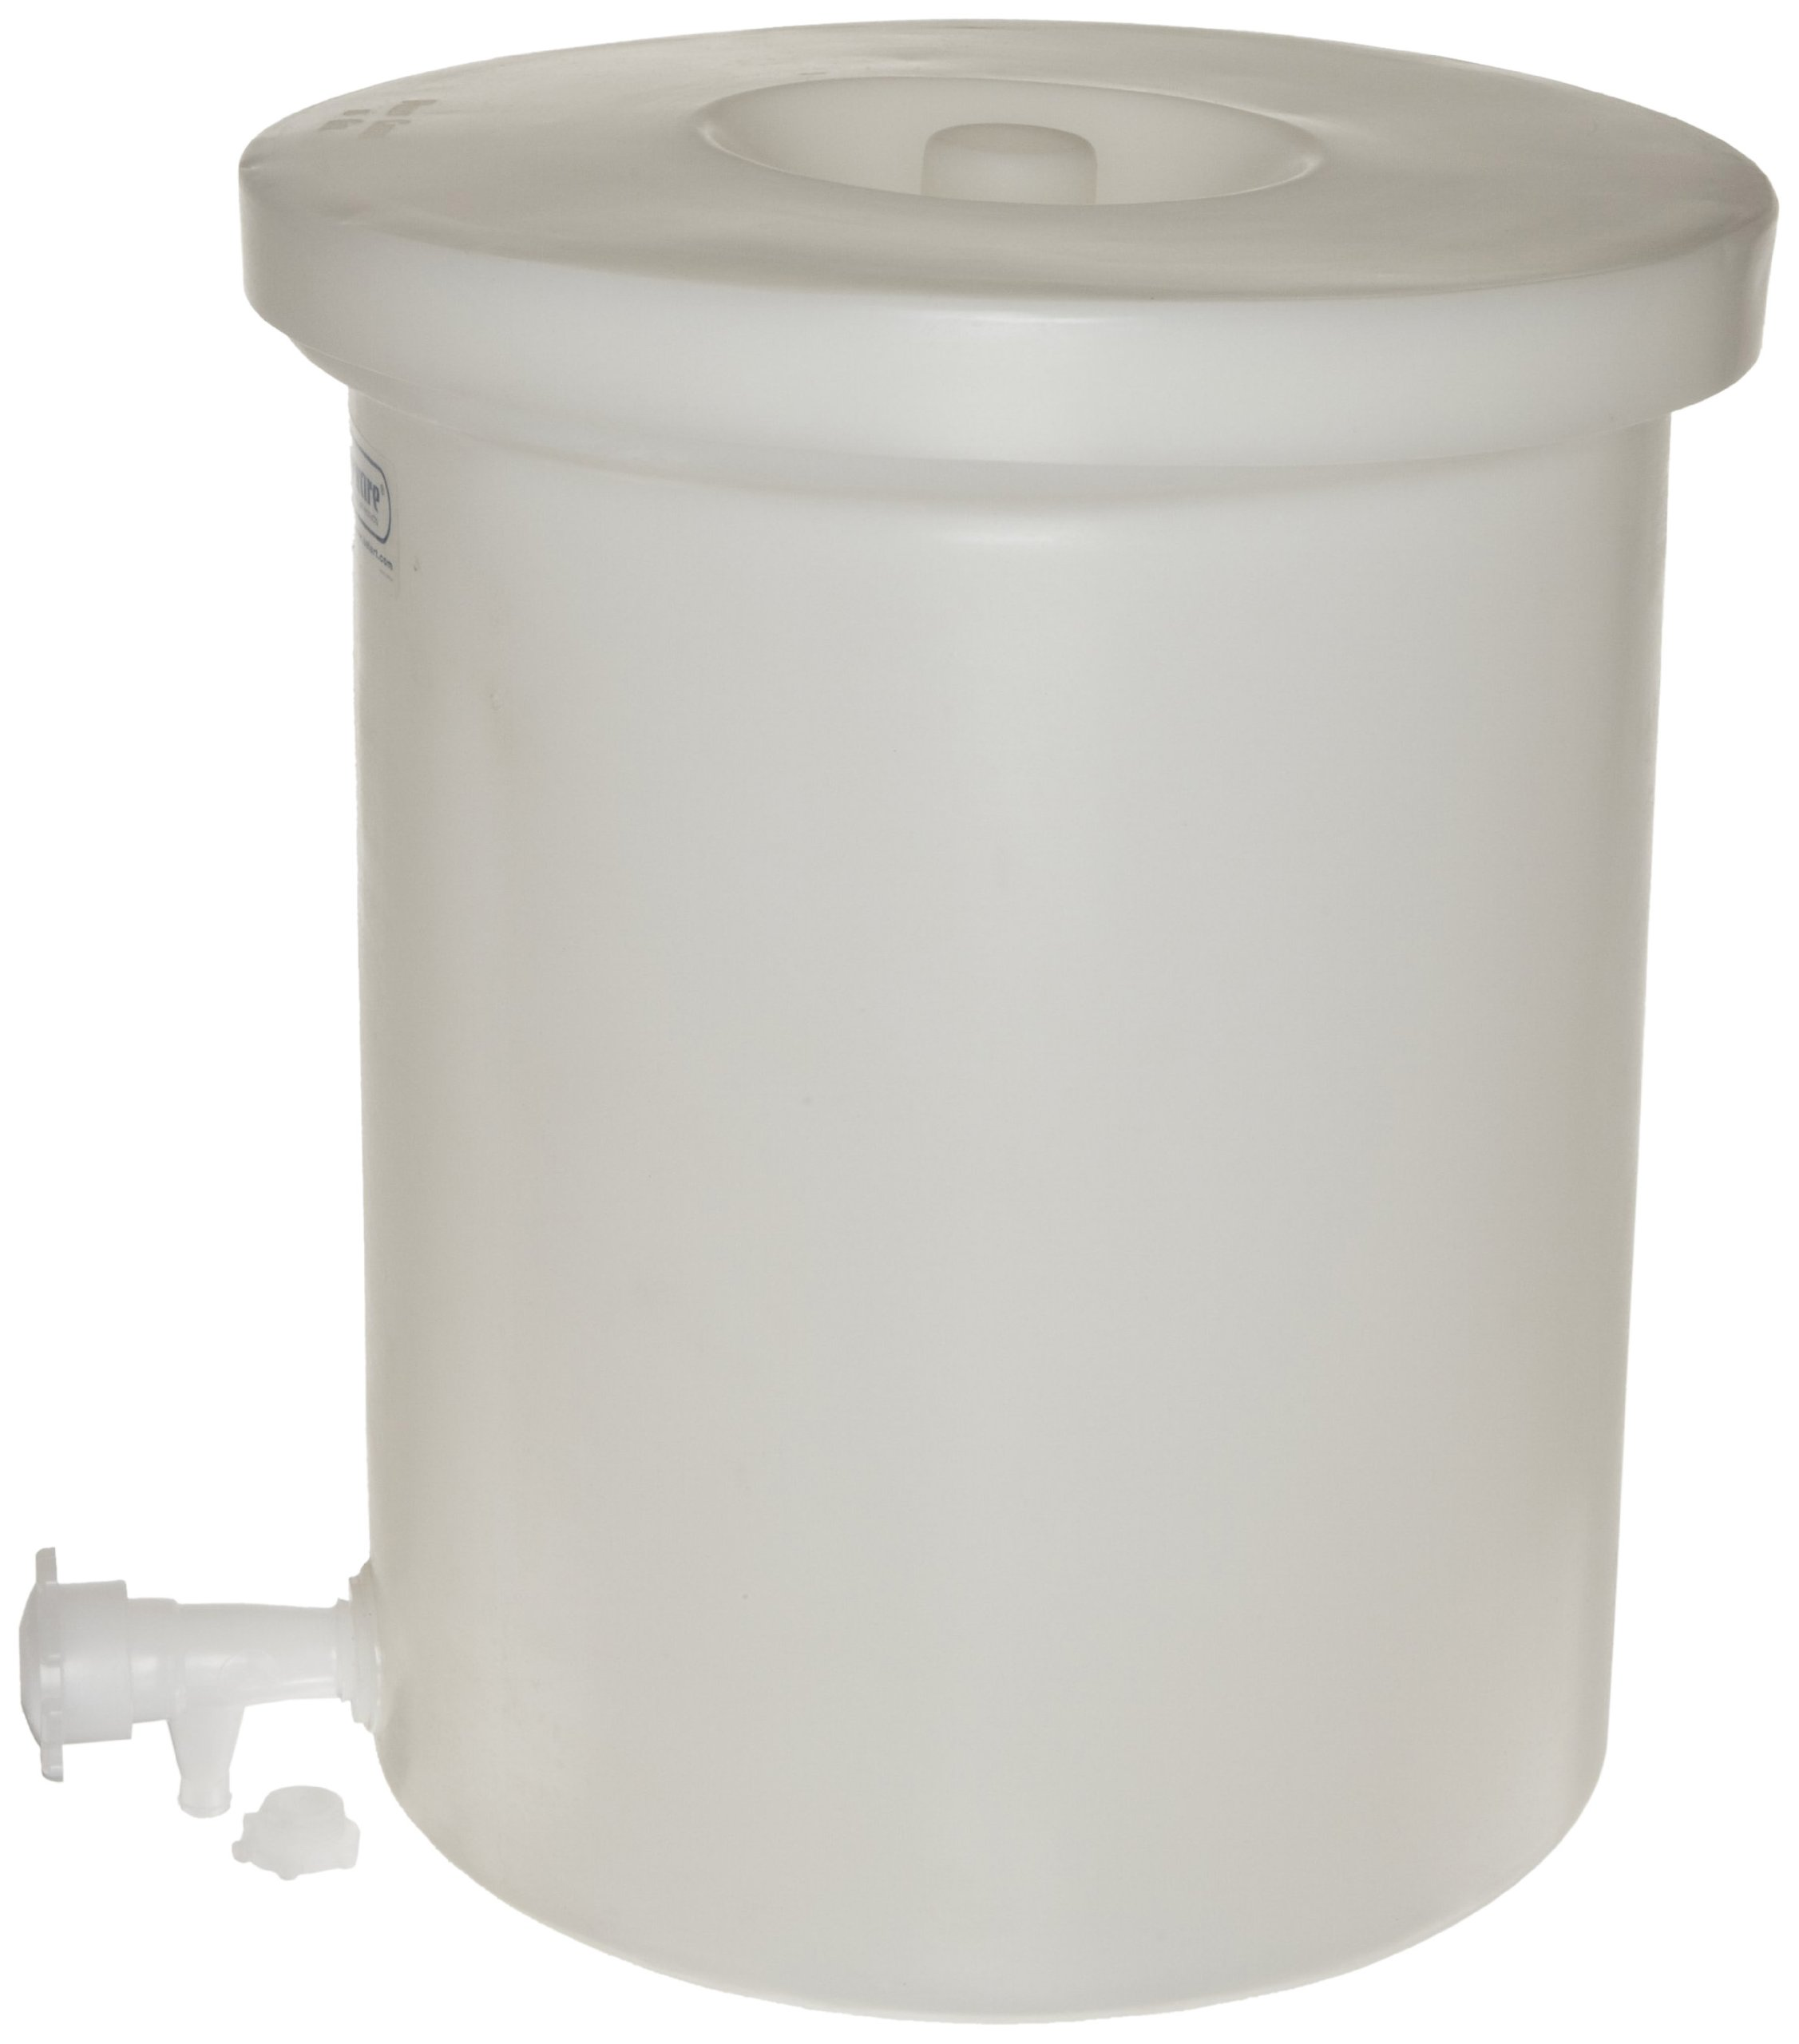 Bel-Art Polly-Crock Polyethylene Tank with Lid, without Faucet; 3gal (H35103-0000)